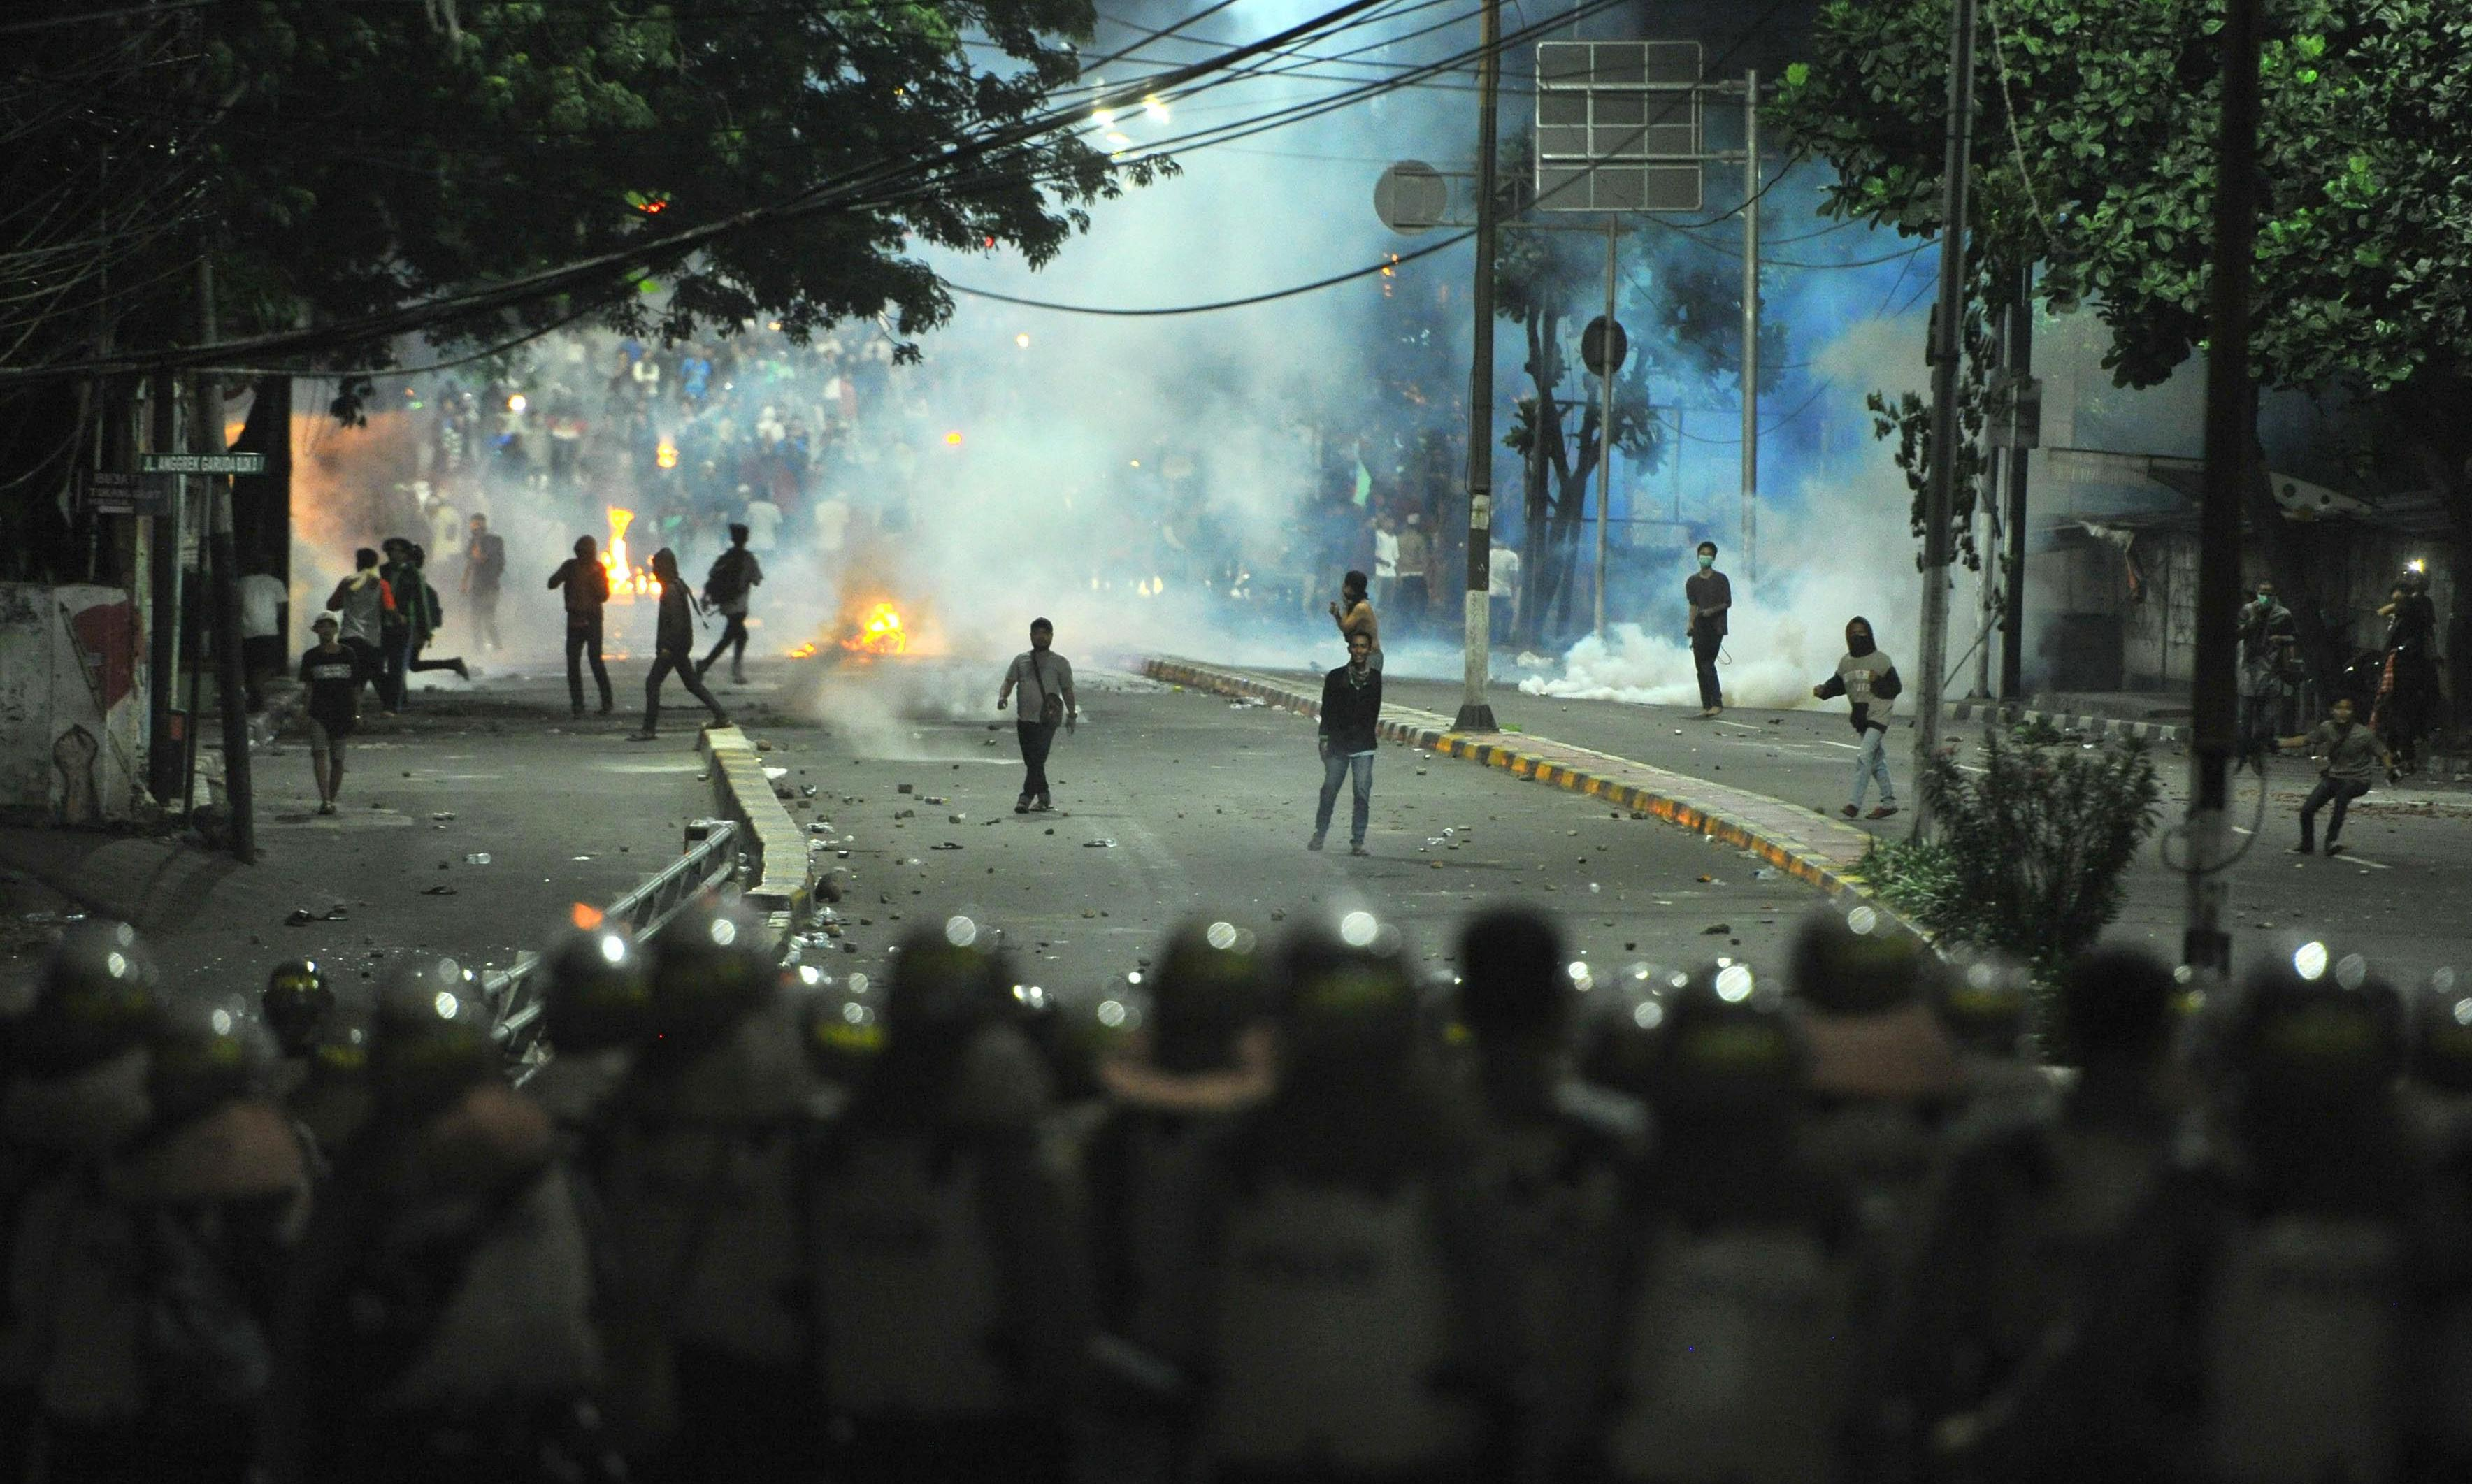 Jakarta riots: Indonesian president says he will not tolerate threats to unity